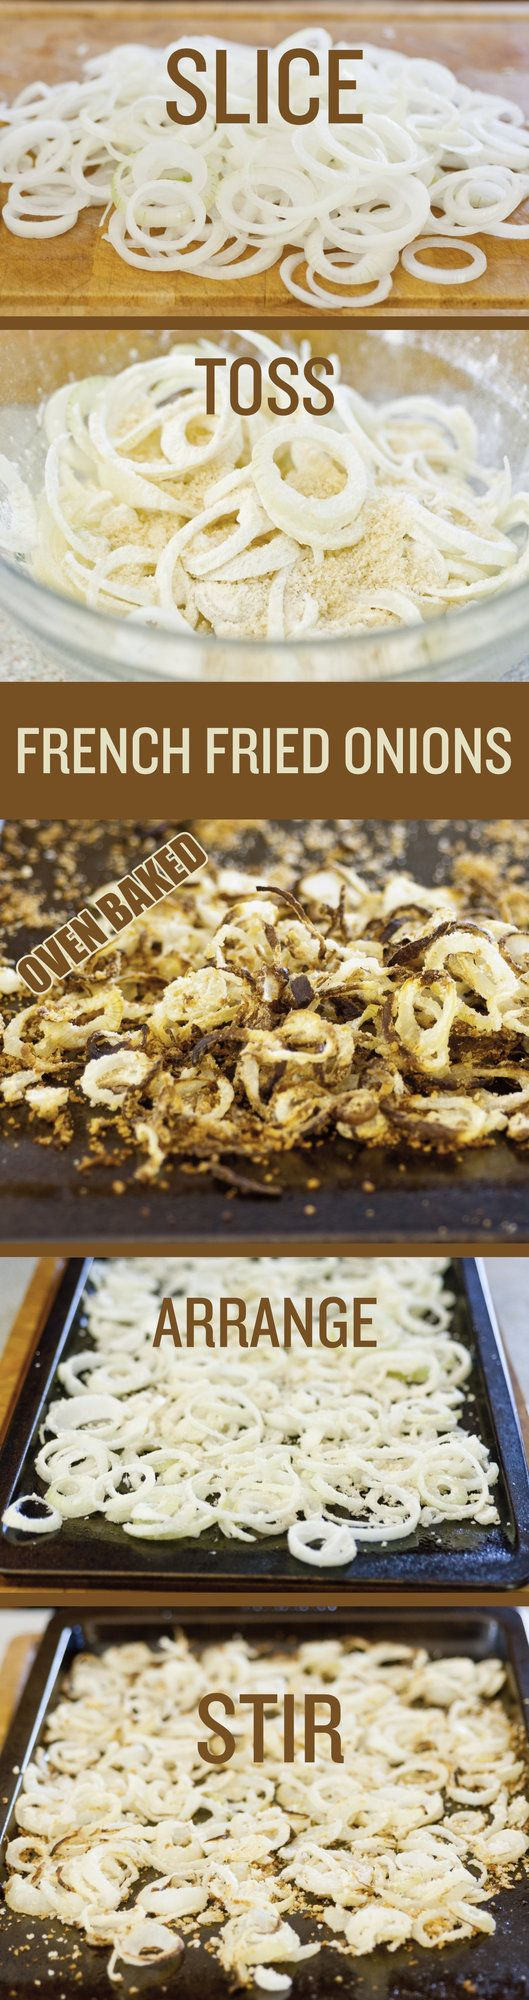 How to make french fried onions from scratch. Homemade french fried onions are healthier and infinitely tastier than those found in the grocery store.